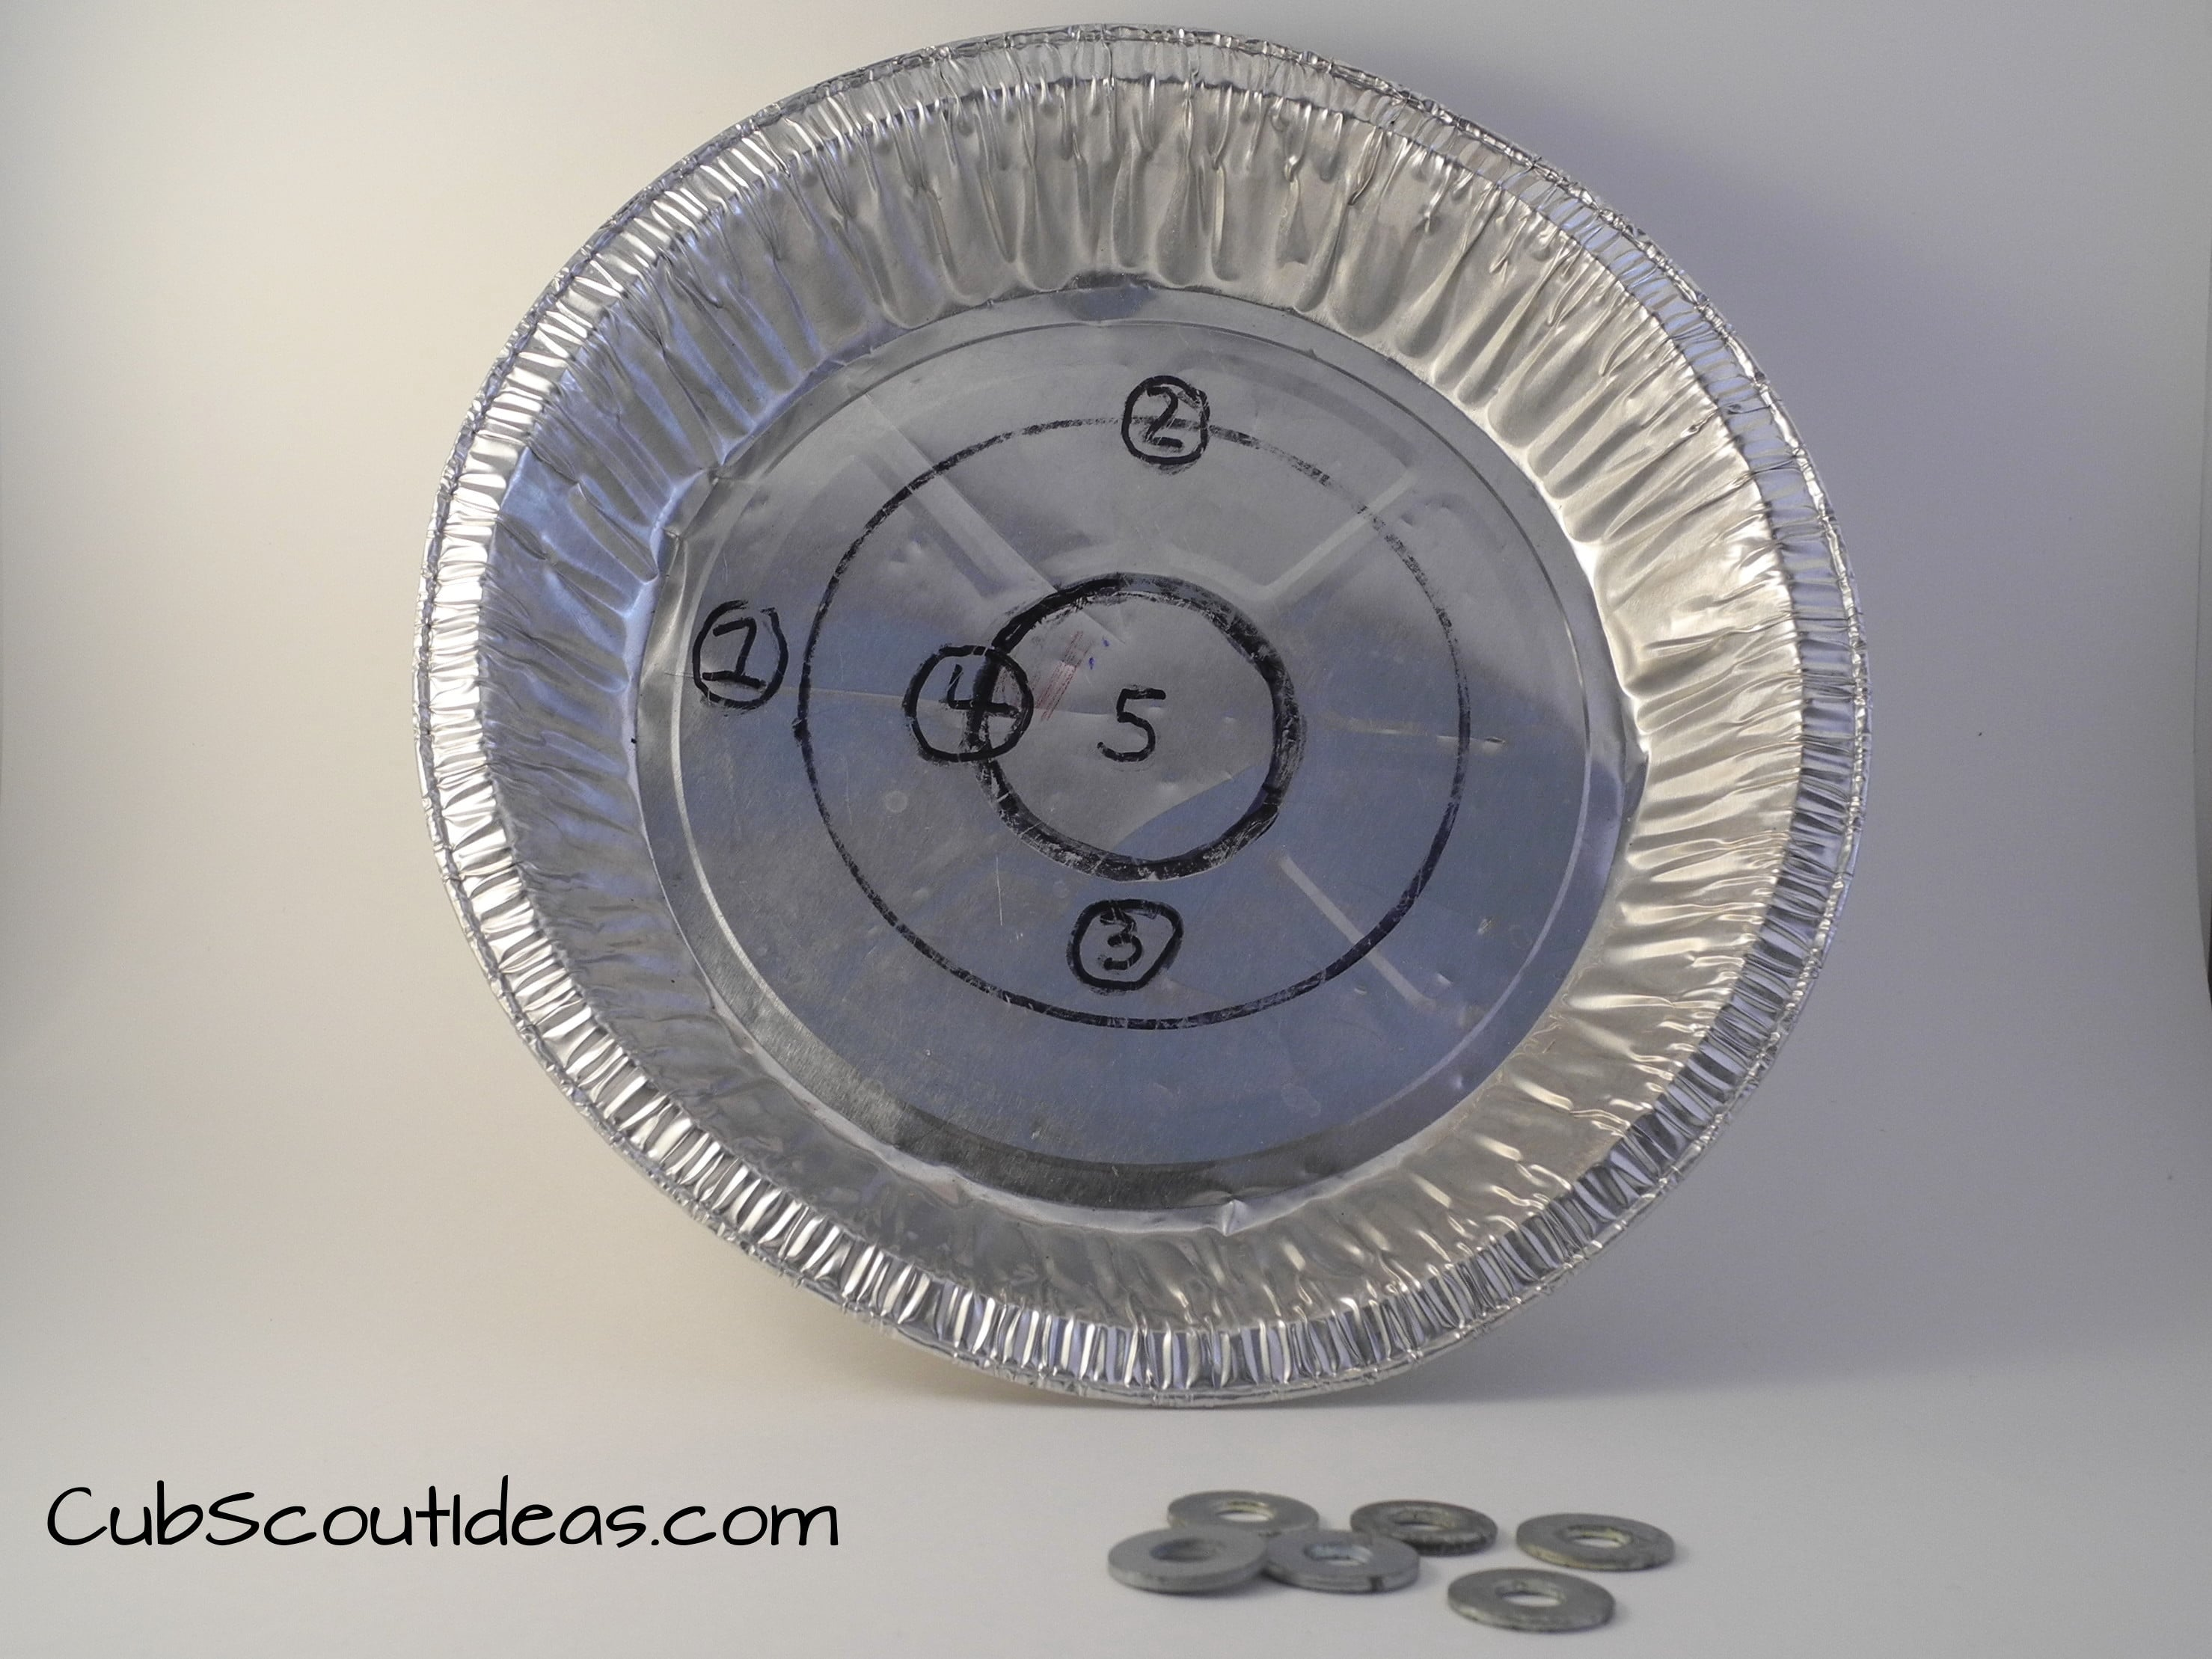 cub scout pie plate game